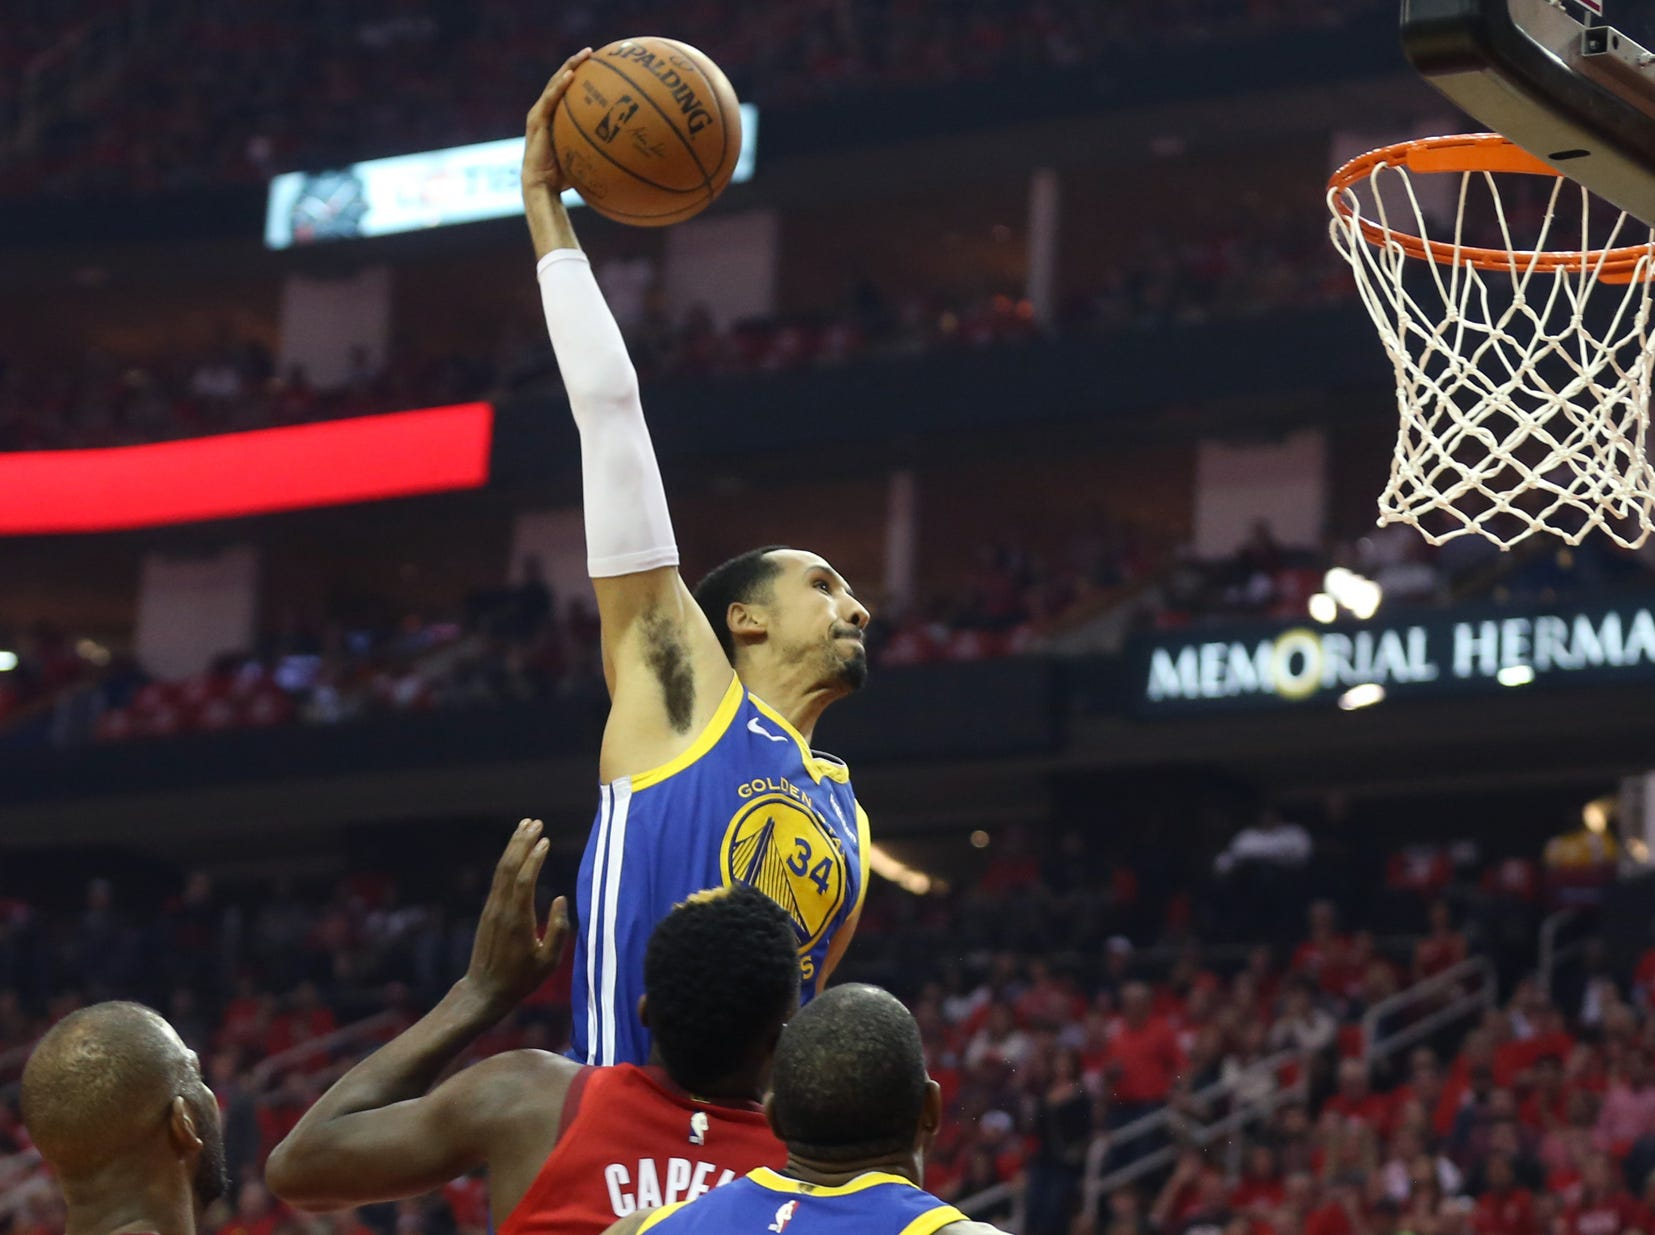 May 10: Warriors guard Shaun Livingston rises up for the one-handed flush during Game 6 against the Rockets in Houston.